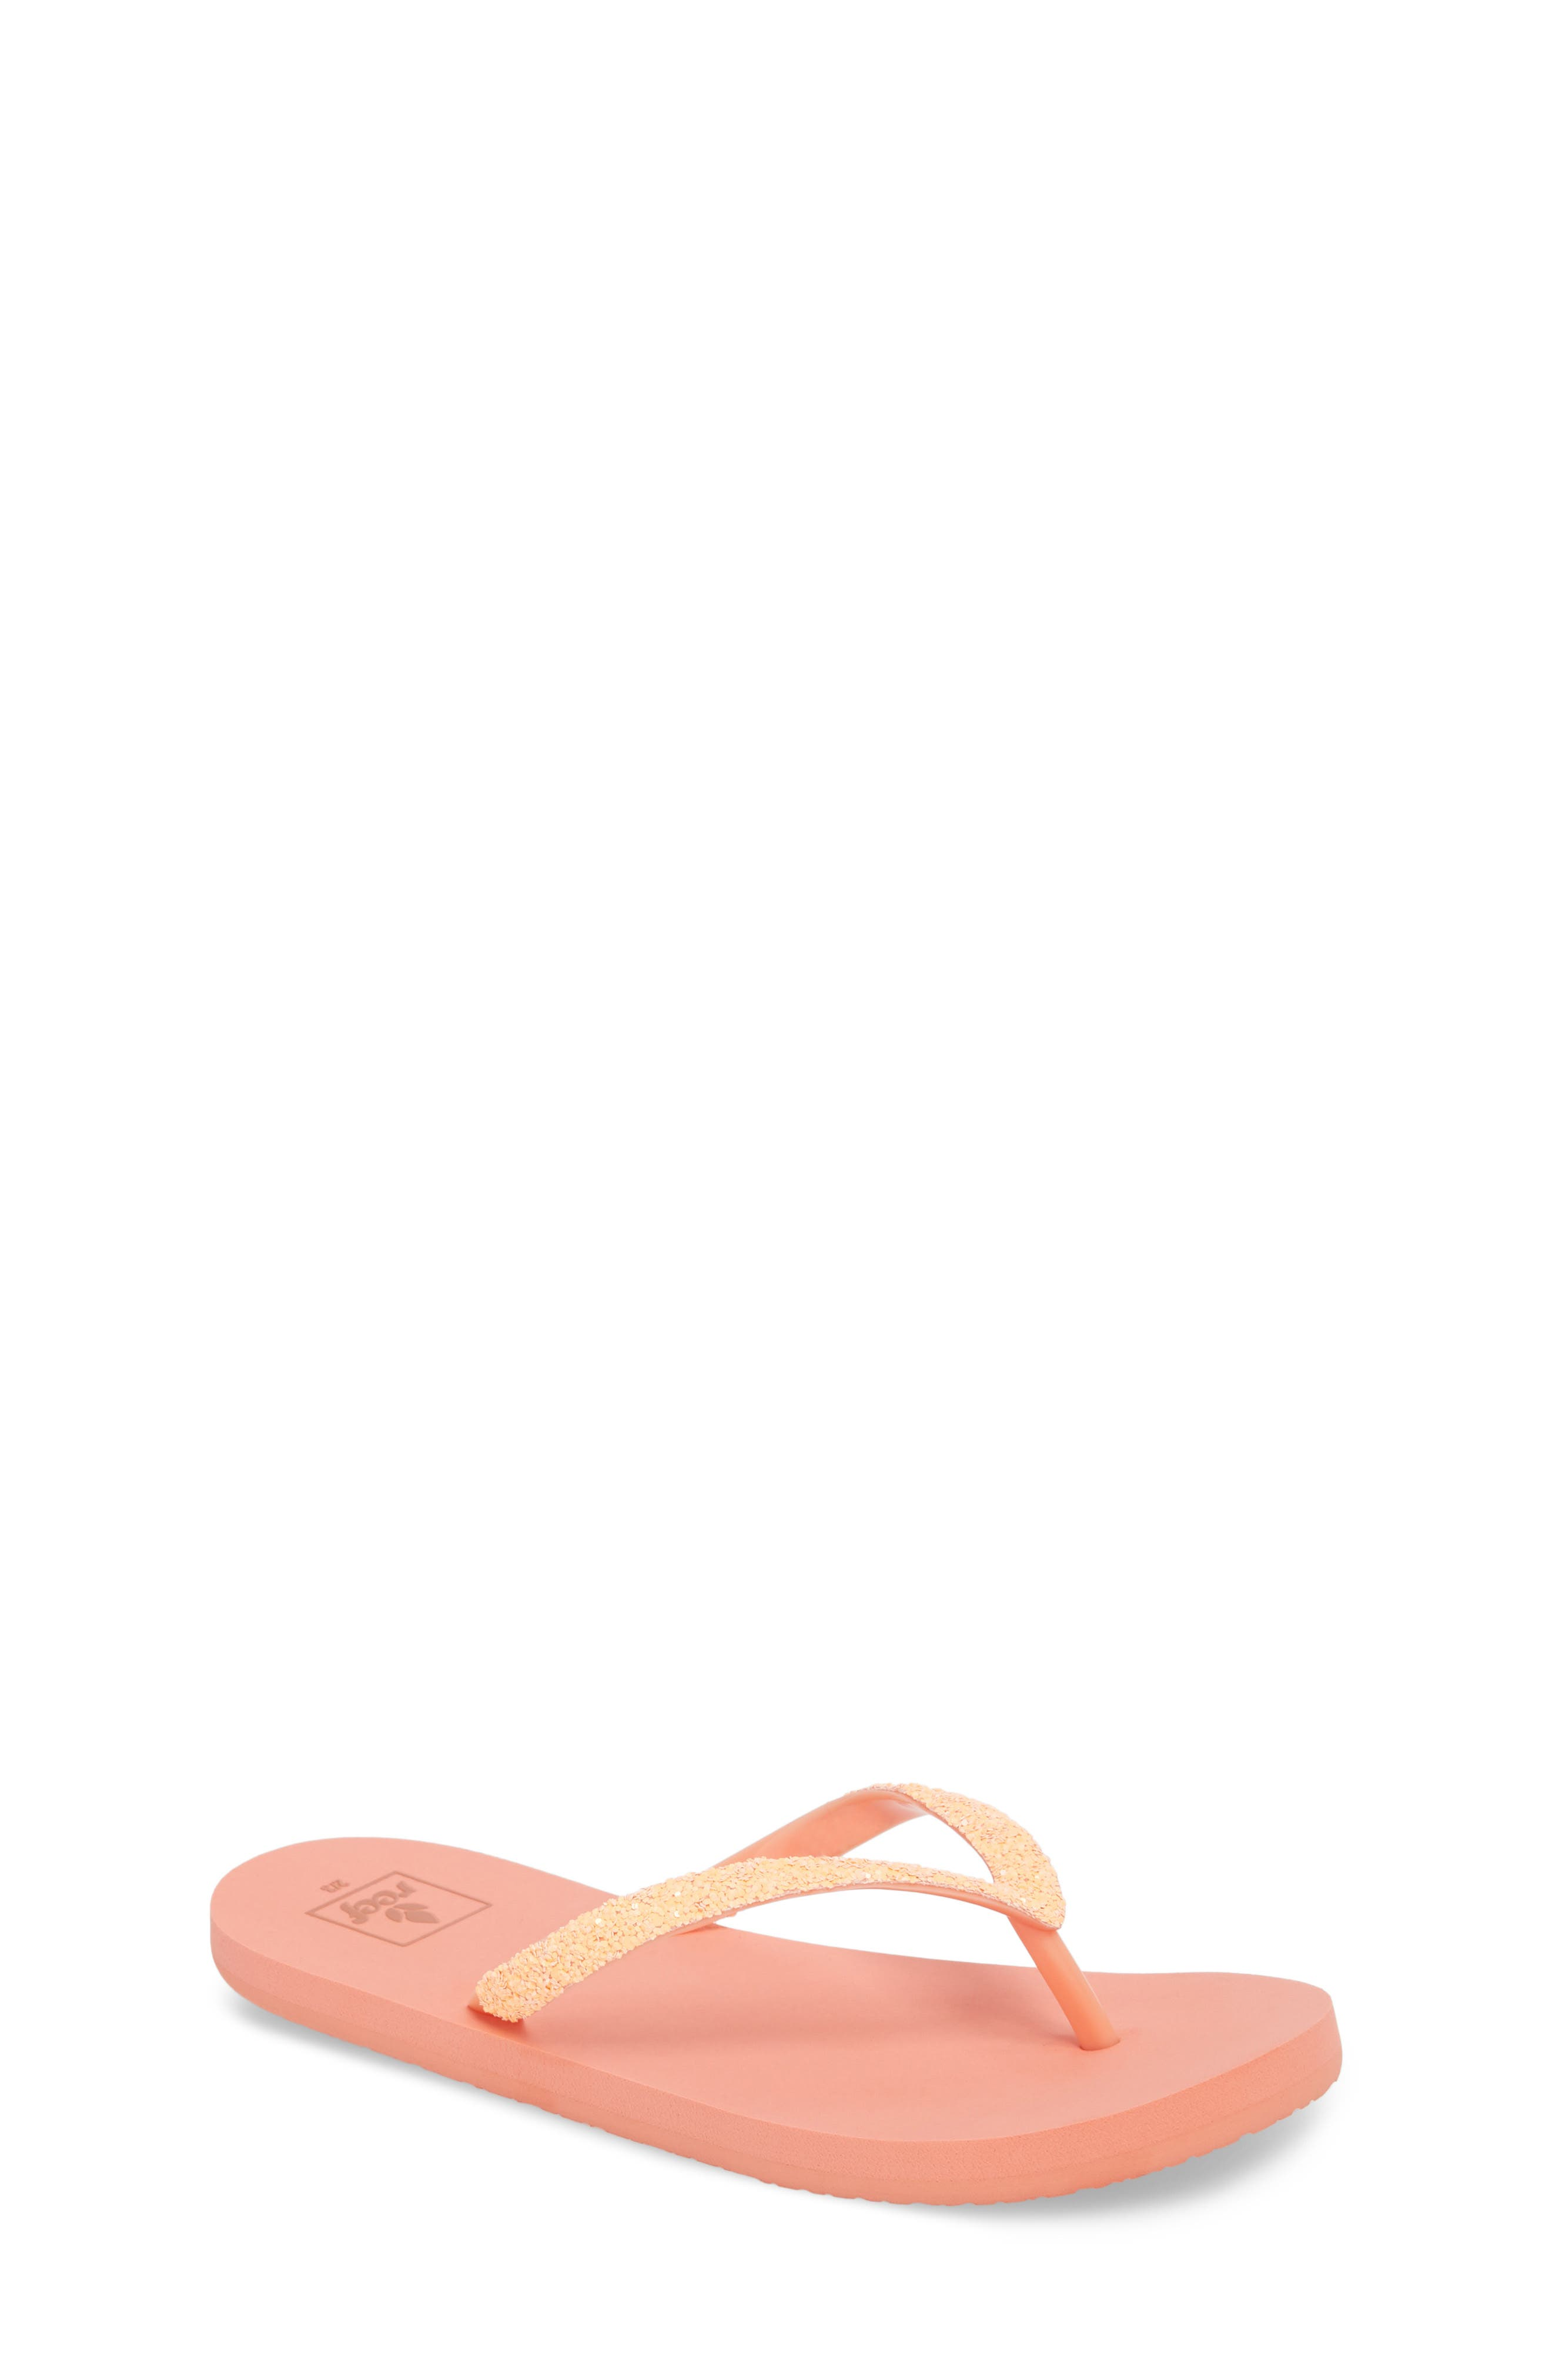 Little Stargazer Glitter Sandal,                             Main thumbnail 1, color,                             Orange